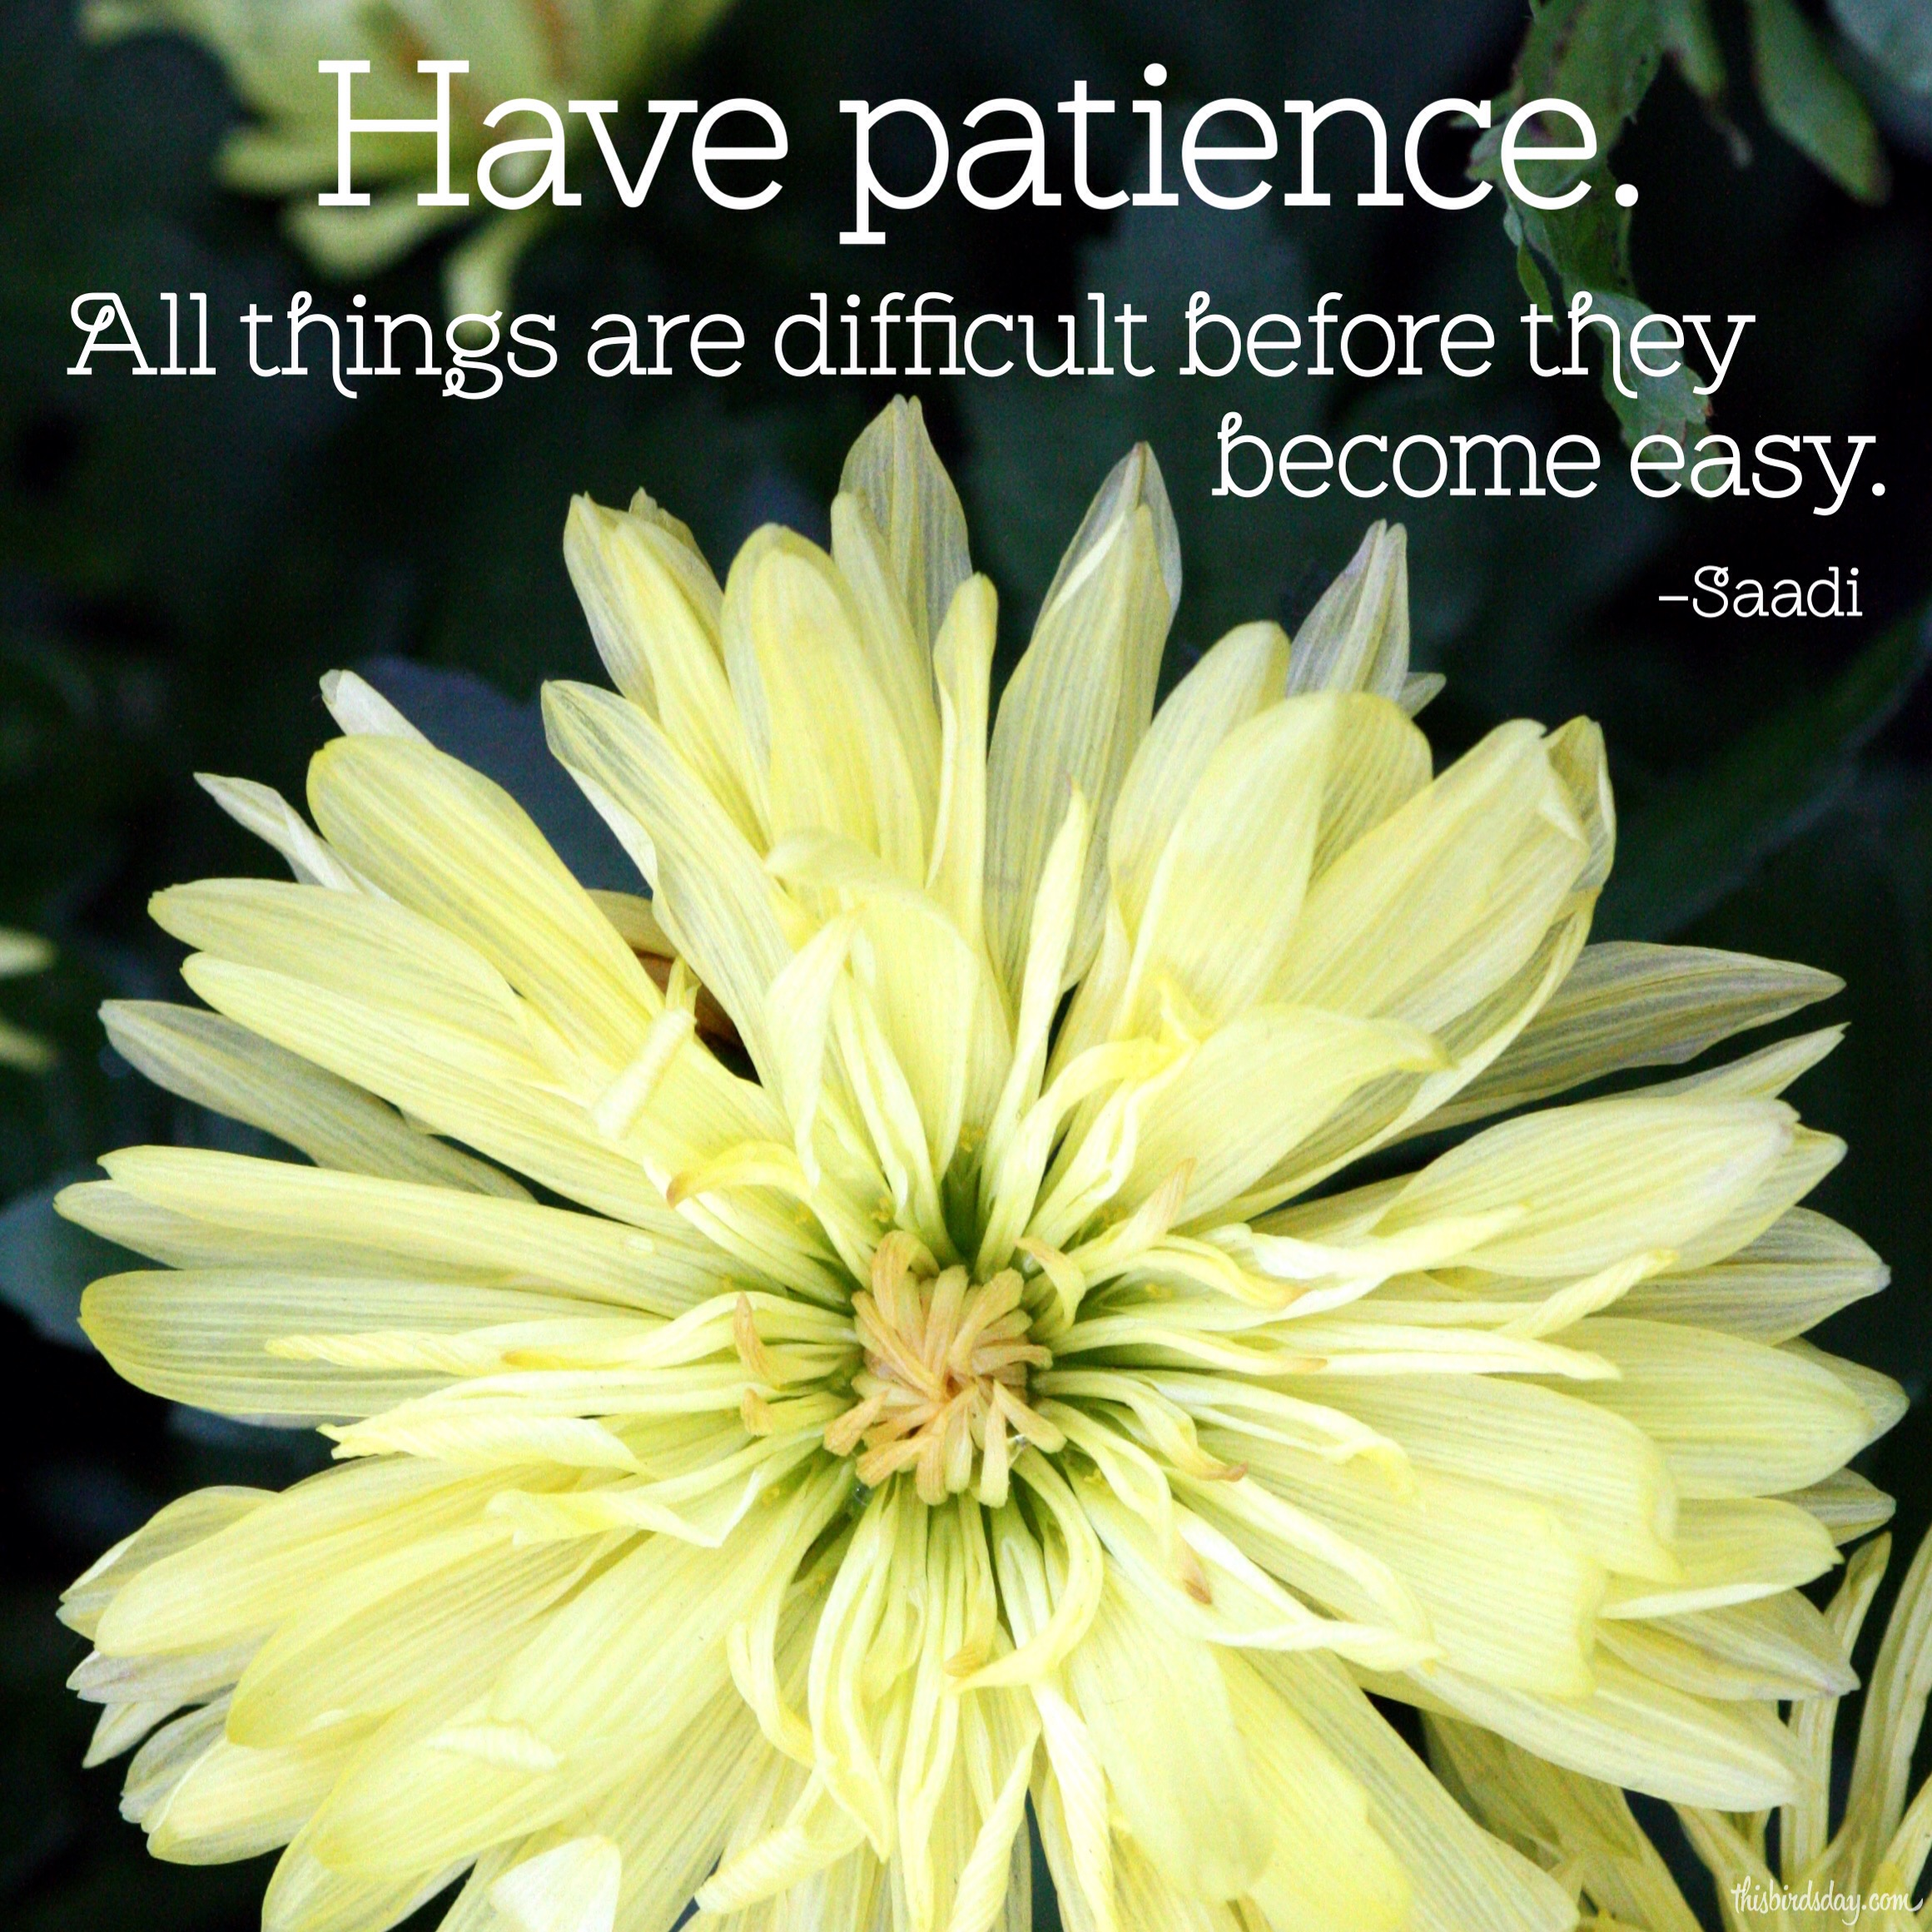 """""""Have patience. All things are difficult before they become easy."""" Saadi Photo copyright Sheri Landry"""